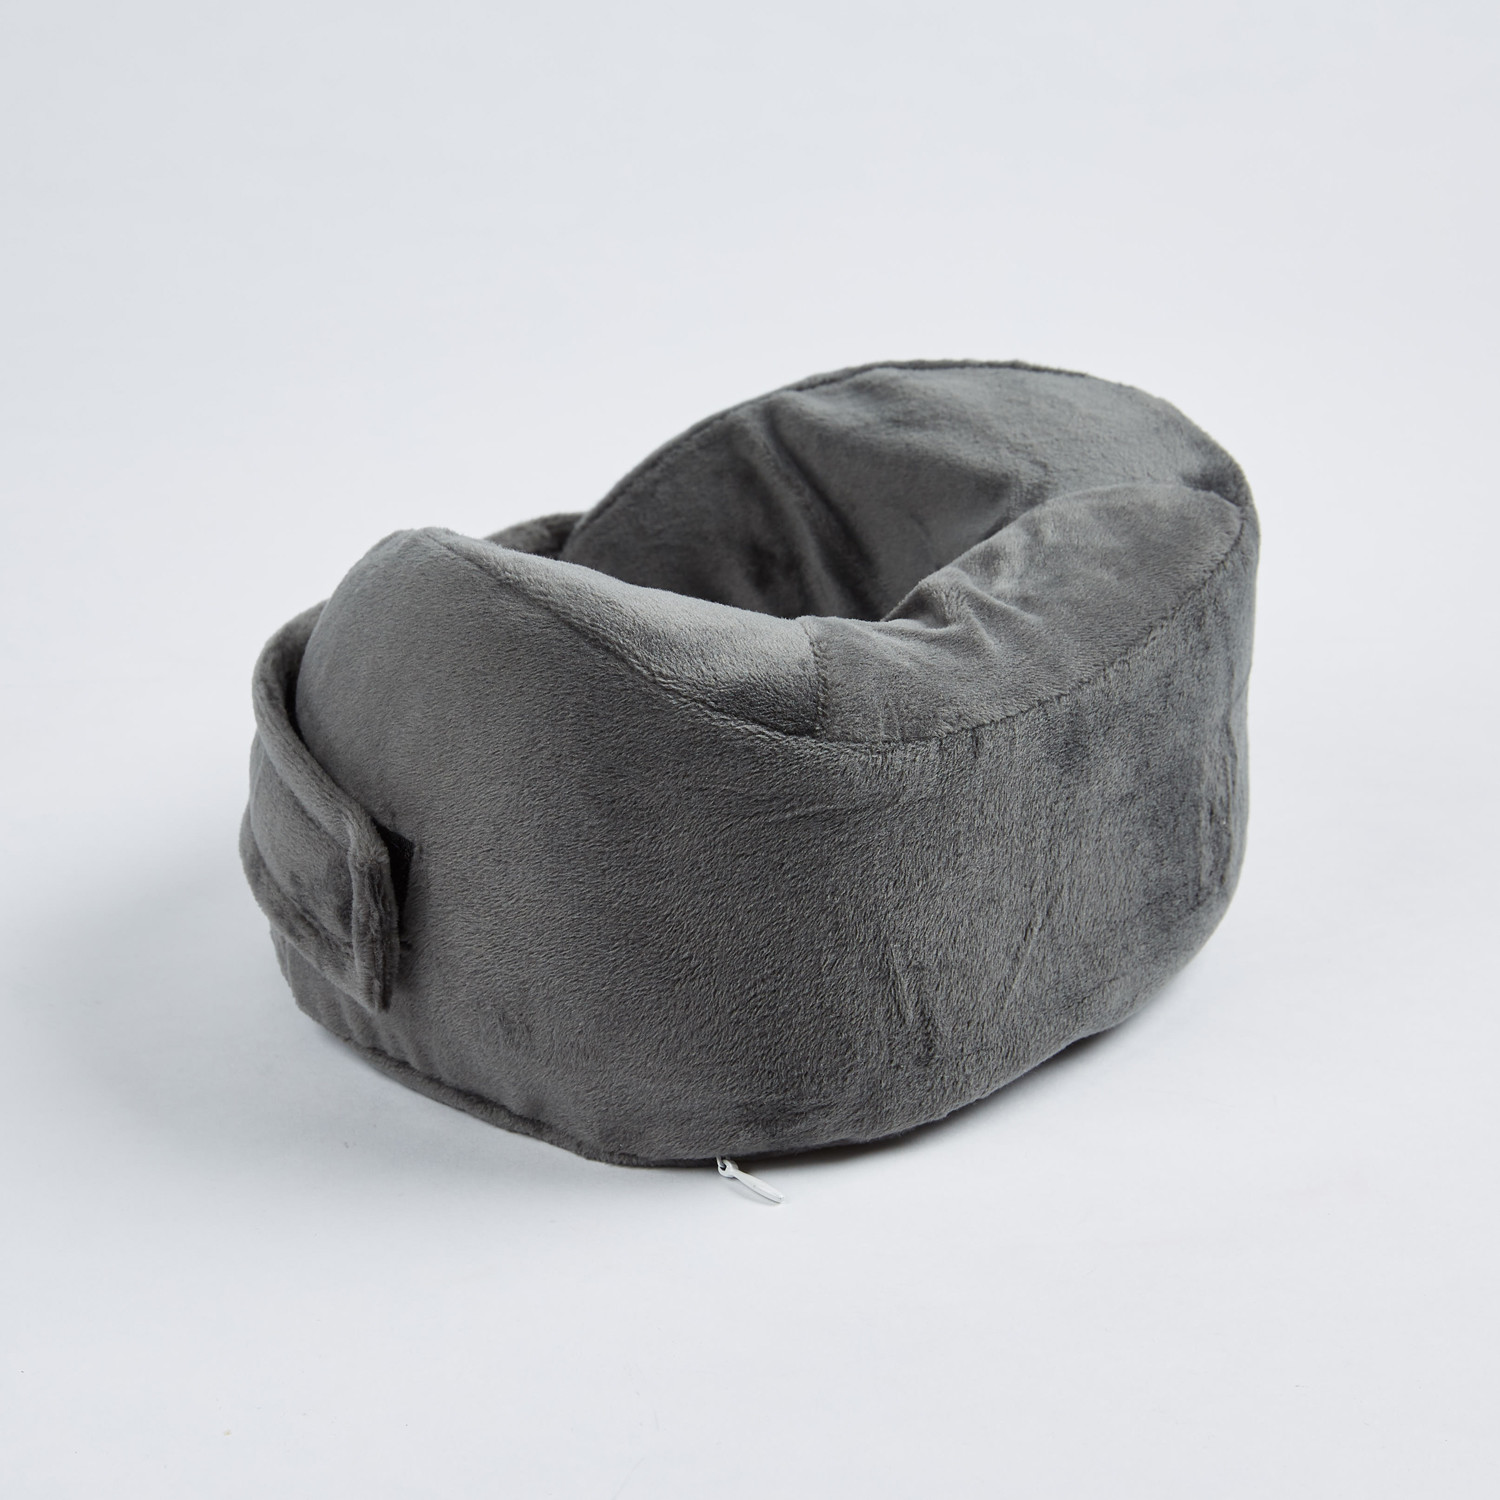 Tate Modern Travel Pillow : Travel Pillow // Grey - HandyCosy - Touch of Modern